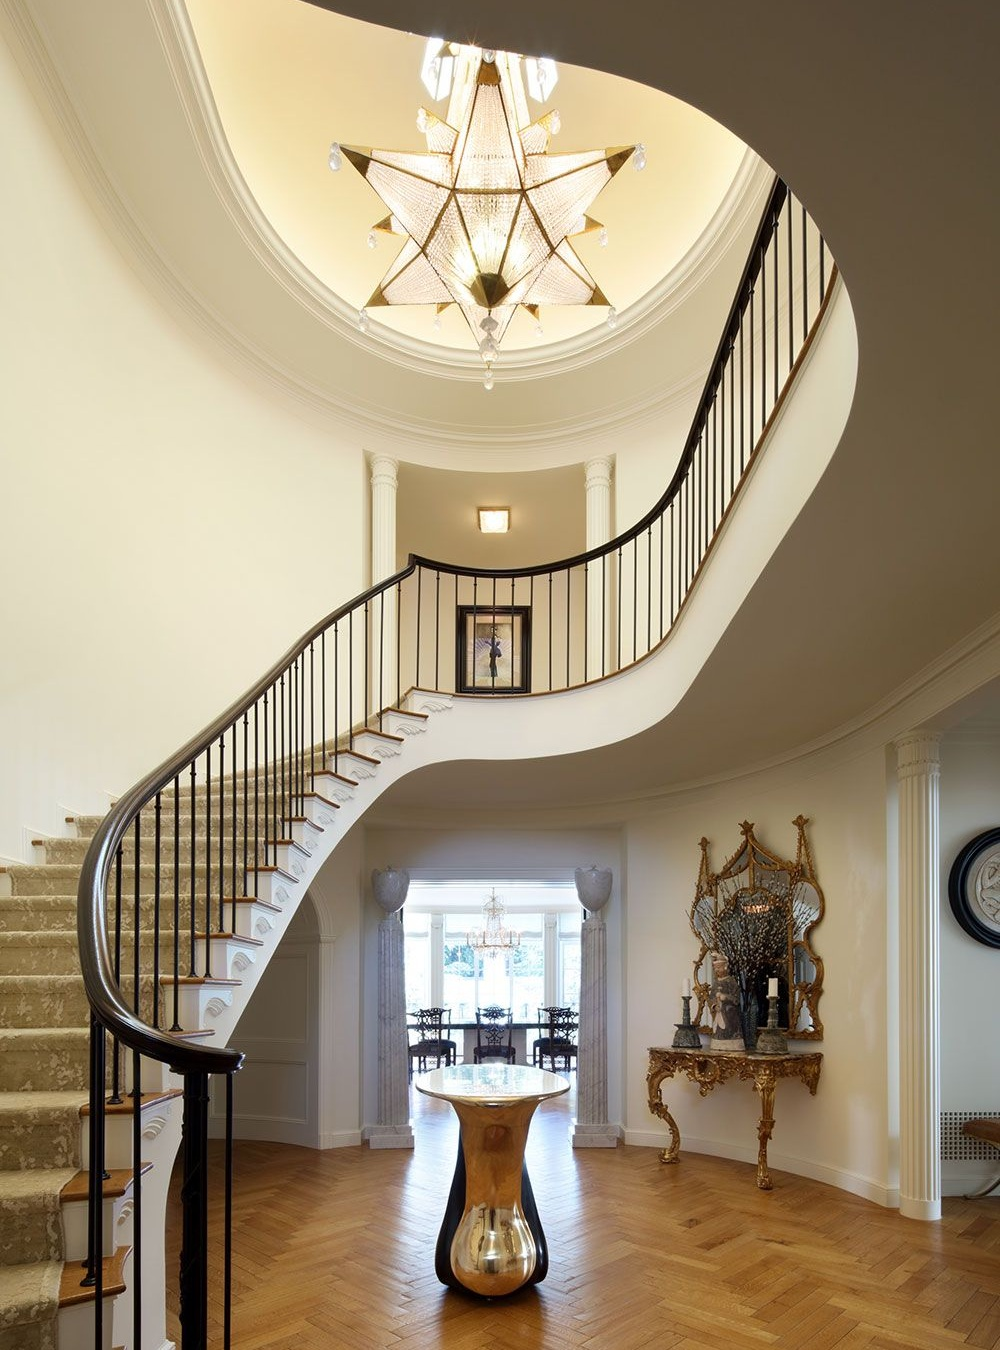 entryway lighting ideas 22 Outrageously Stunning Entryway Lighting Ideas 22 Outrageously Stunning Entryway Lighting Ideas 1 15